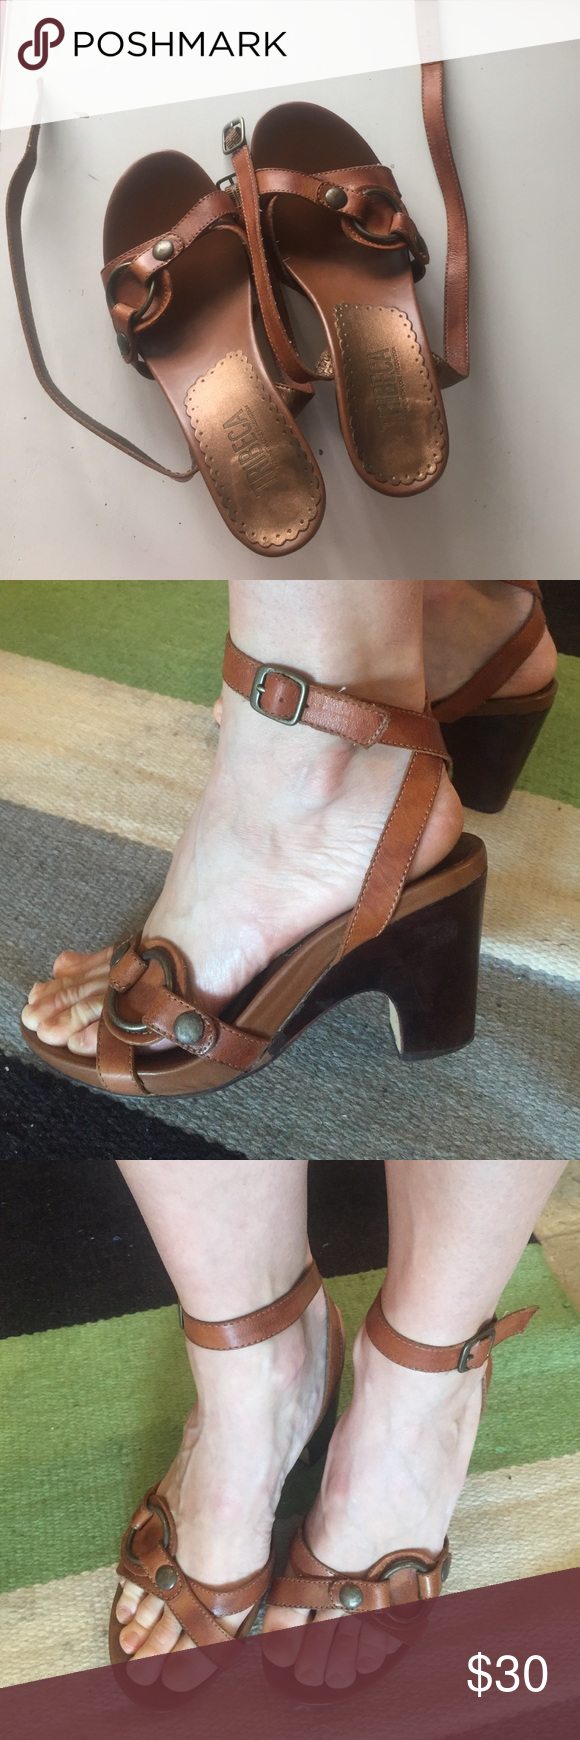 Leather sandals Tribeca Akenneth Cole Pruduction leather sandals with straps going around the ankle . Kenneth Cole Shoes Sandals